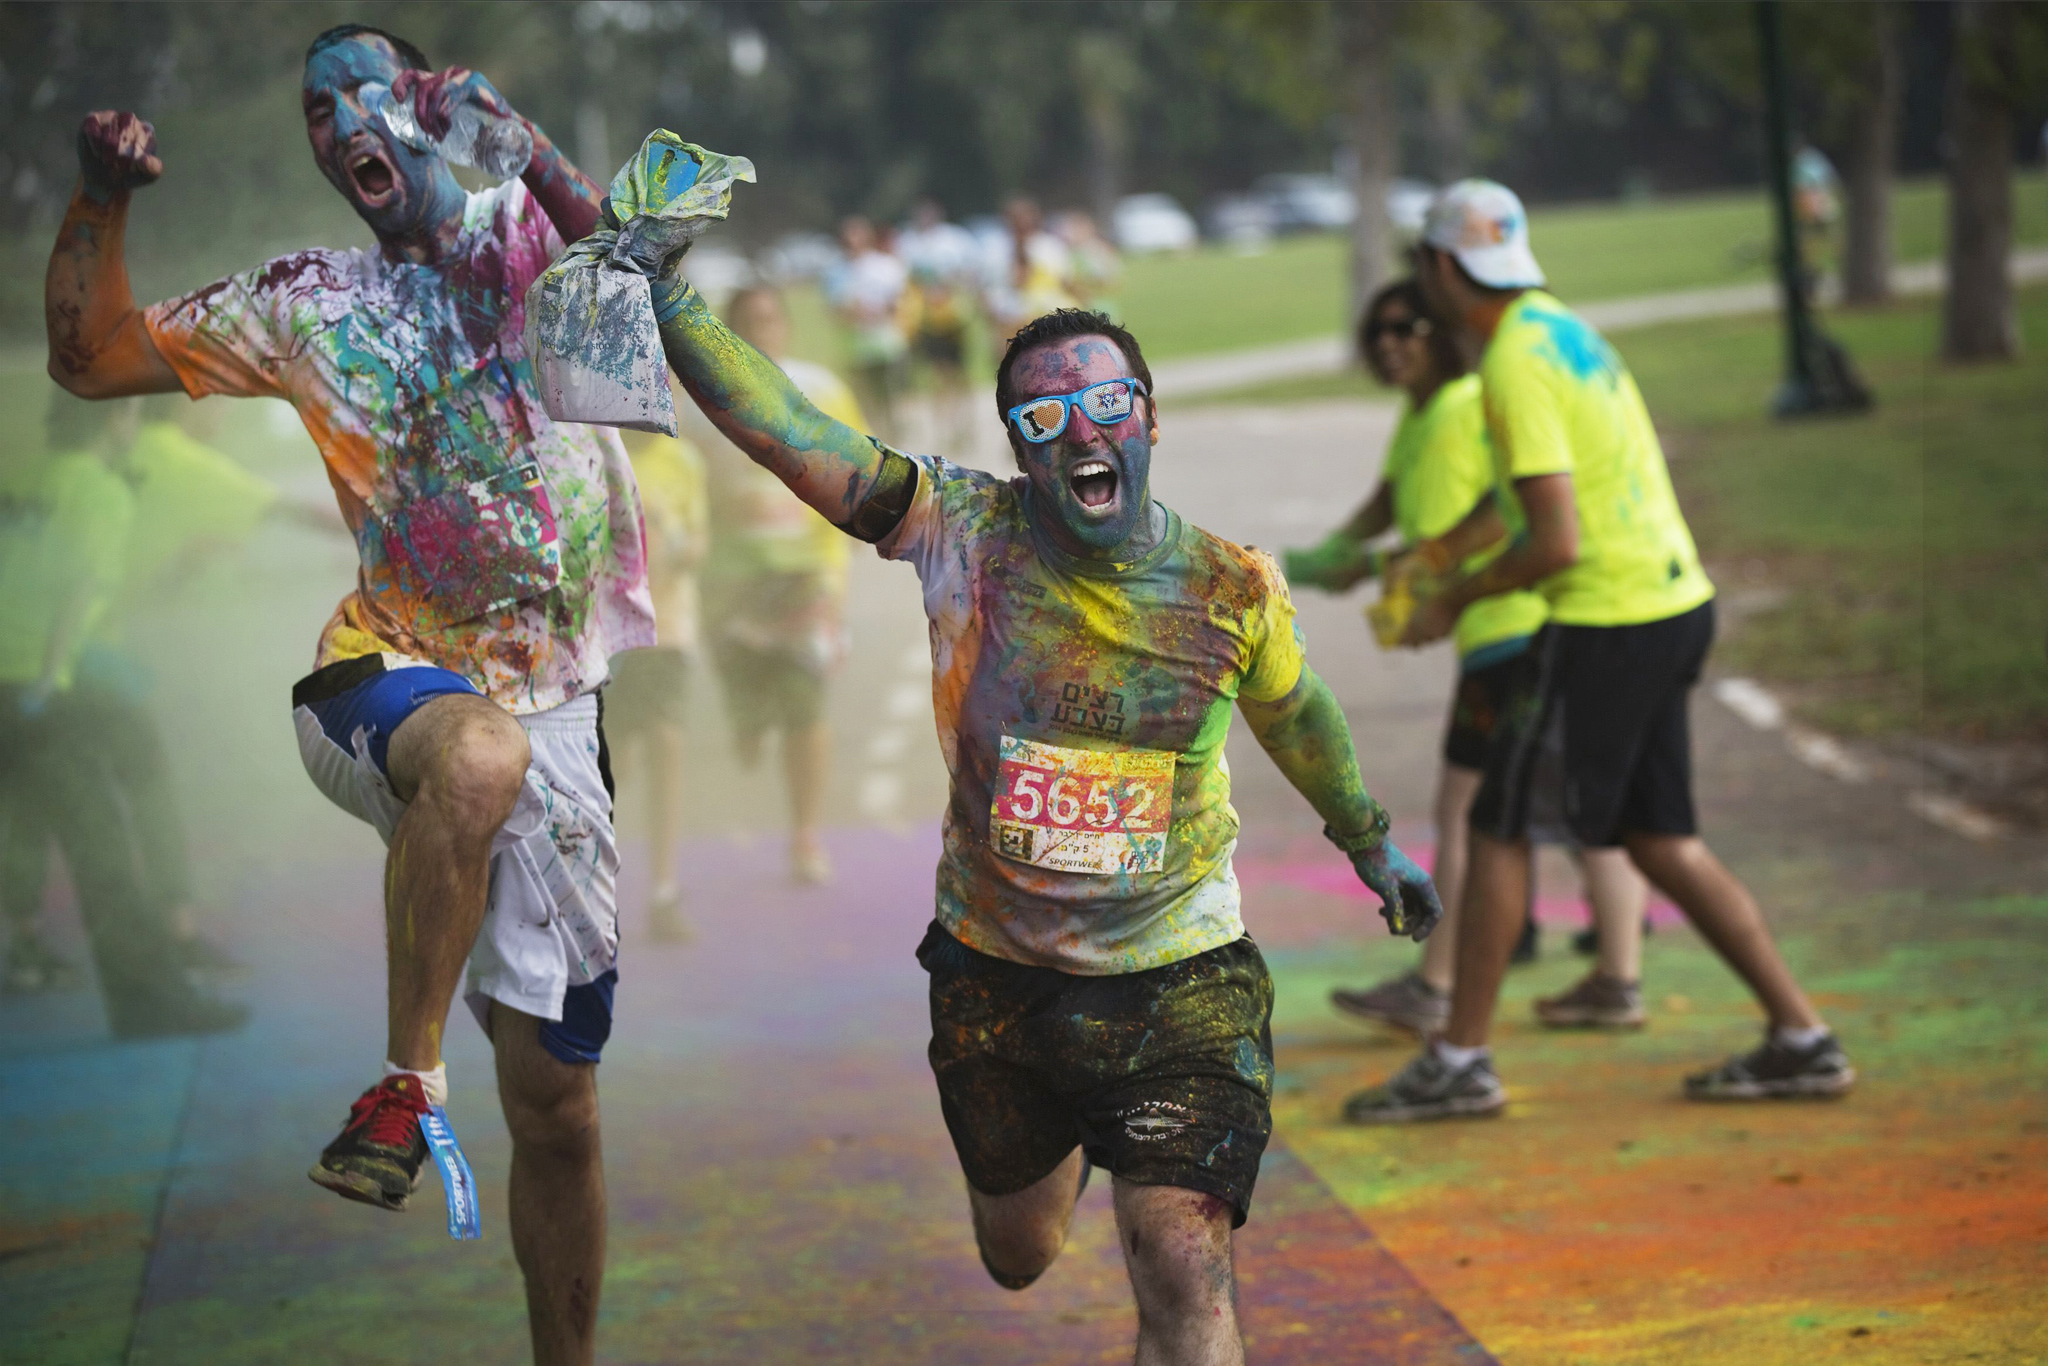 "Participants in an amateur race approach the finish in Tel Aviv...Participants in an amateur ""Running in Color"" event approach the finish line of a five kilometre (three mile) race in Tel Aviv, November 14, 2014. Inspired by the Hindu Holi festival, the race involved participants running along a course dotted with locations where coloured powders were thrown over the runners. The event was held to raise awareness about Post Traumatic Stress Disorder caused by conflict in the country. REUTERS/Finbarr O'Reilly"